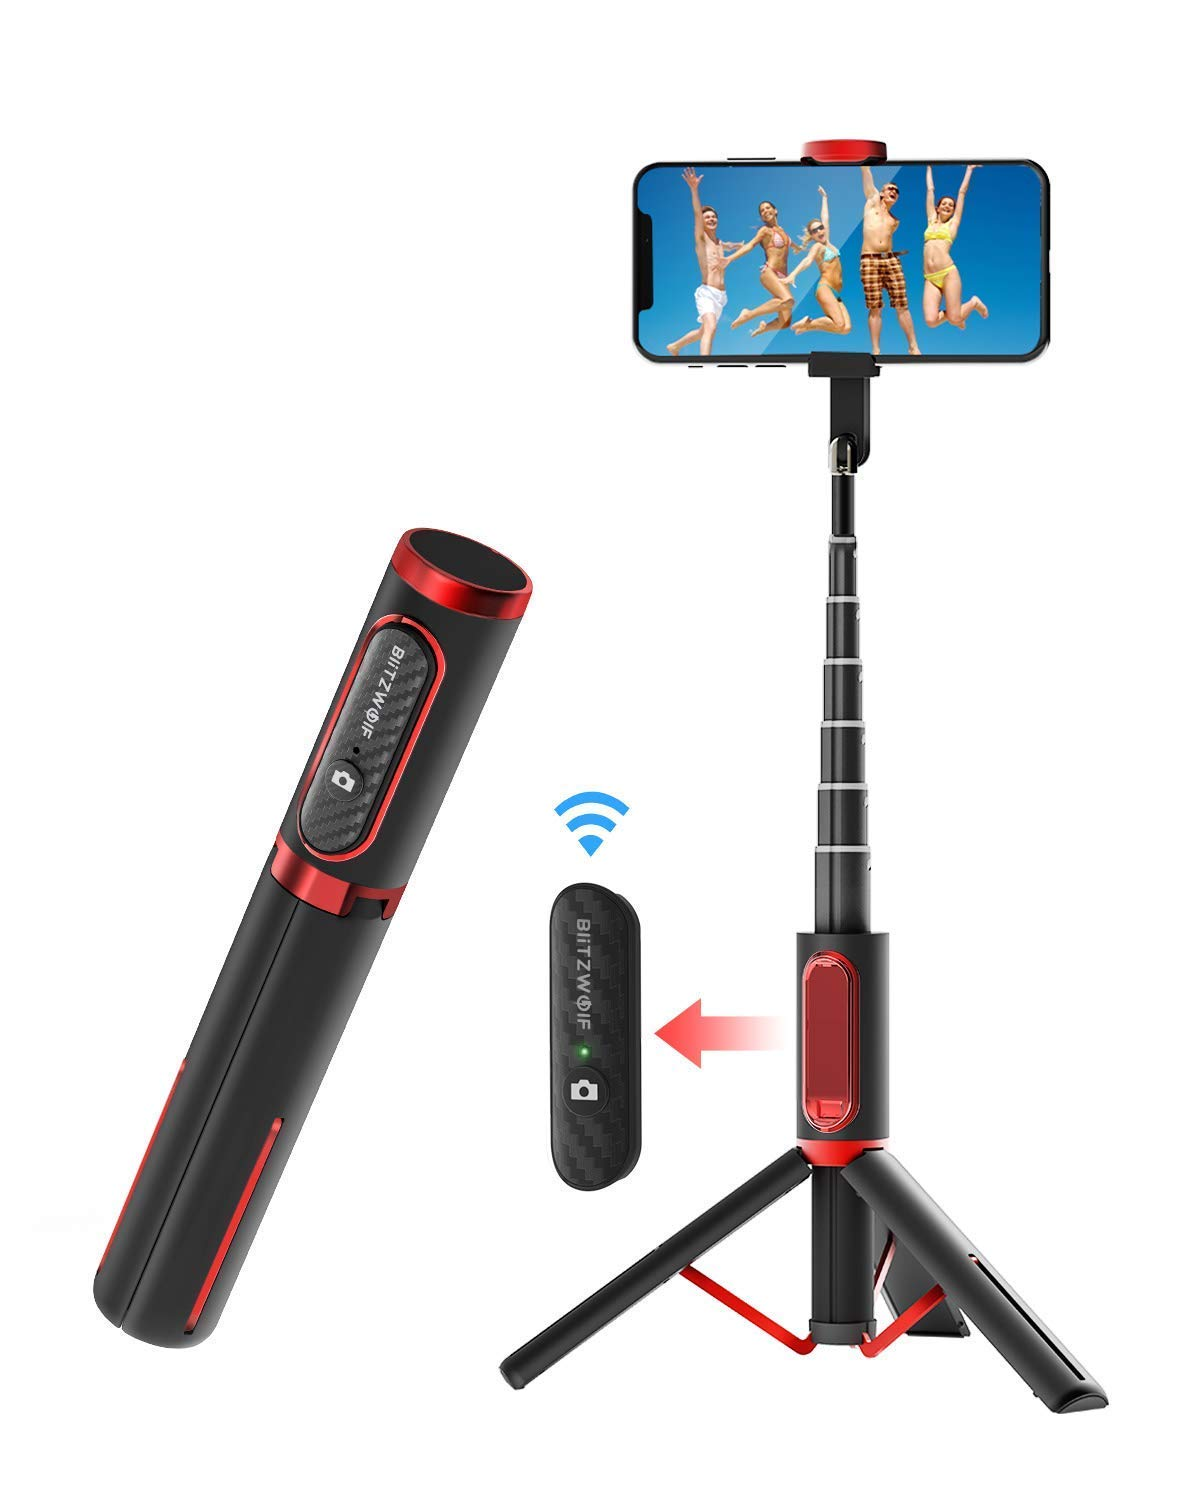 Selfie Stick Tripod, BlitzWolf Lightweight Aluminum All in One Extendable Phone Tripod Selfie Stick Bluetooth with Remote for iPhone Xs MAX/XR/XS/X/8/8 Plus/7/7 Plus/6s/6, Galaxy S10/S9/S9 Plus, More by BlitzWolf